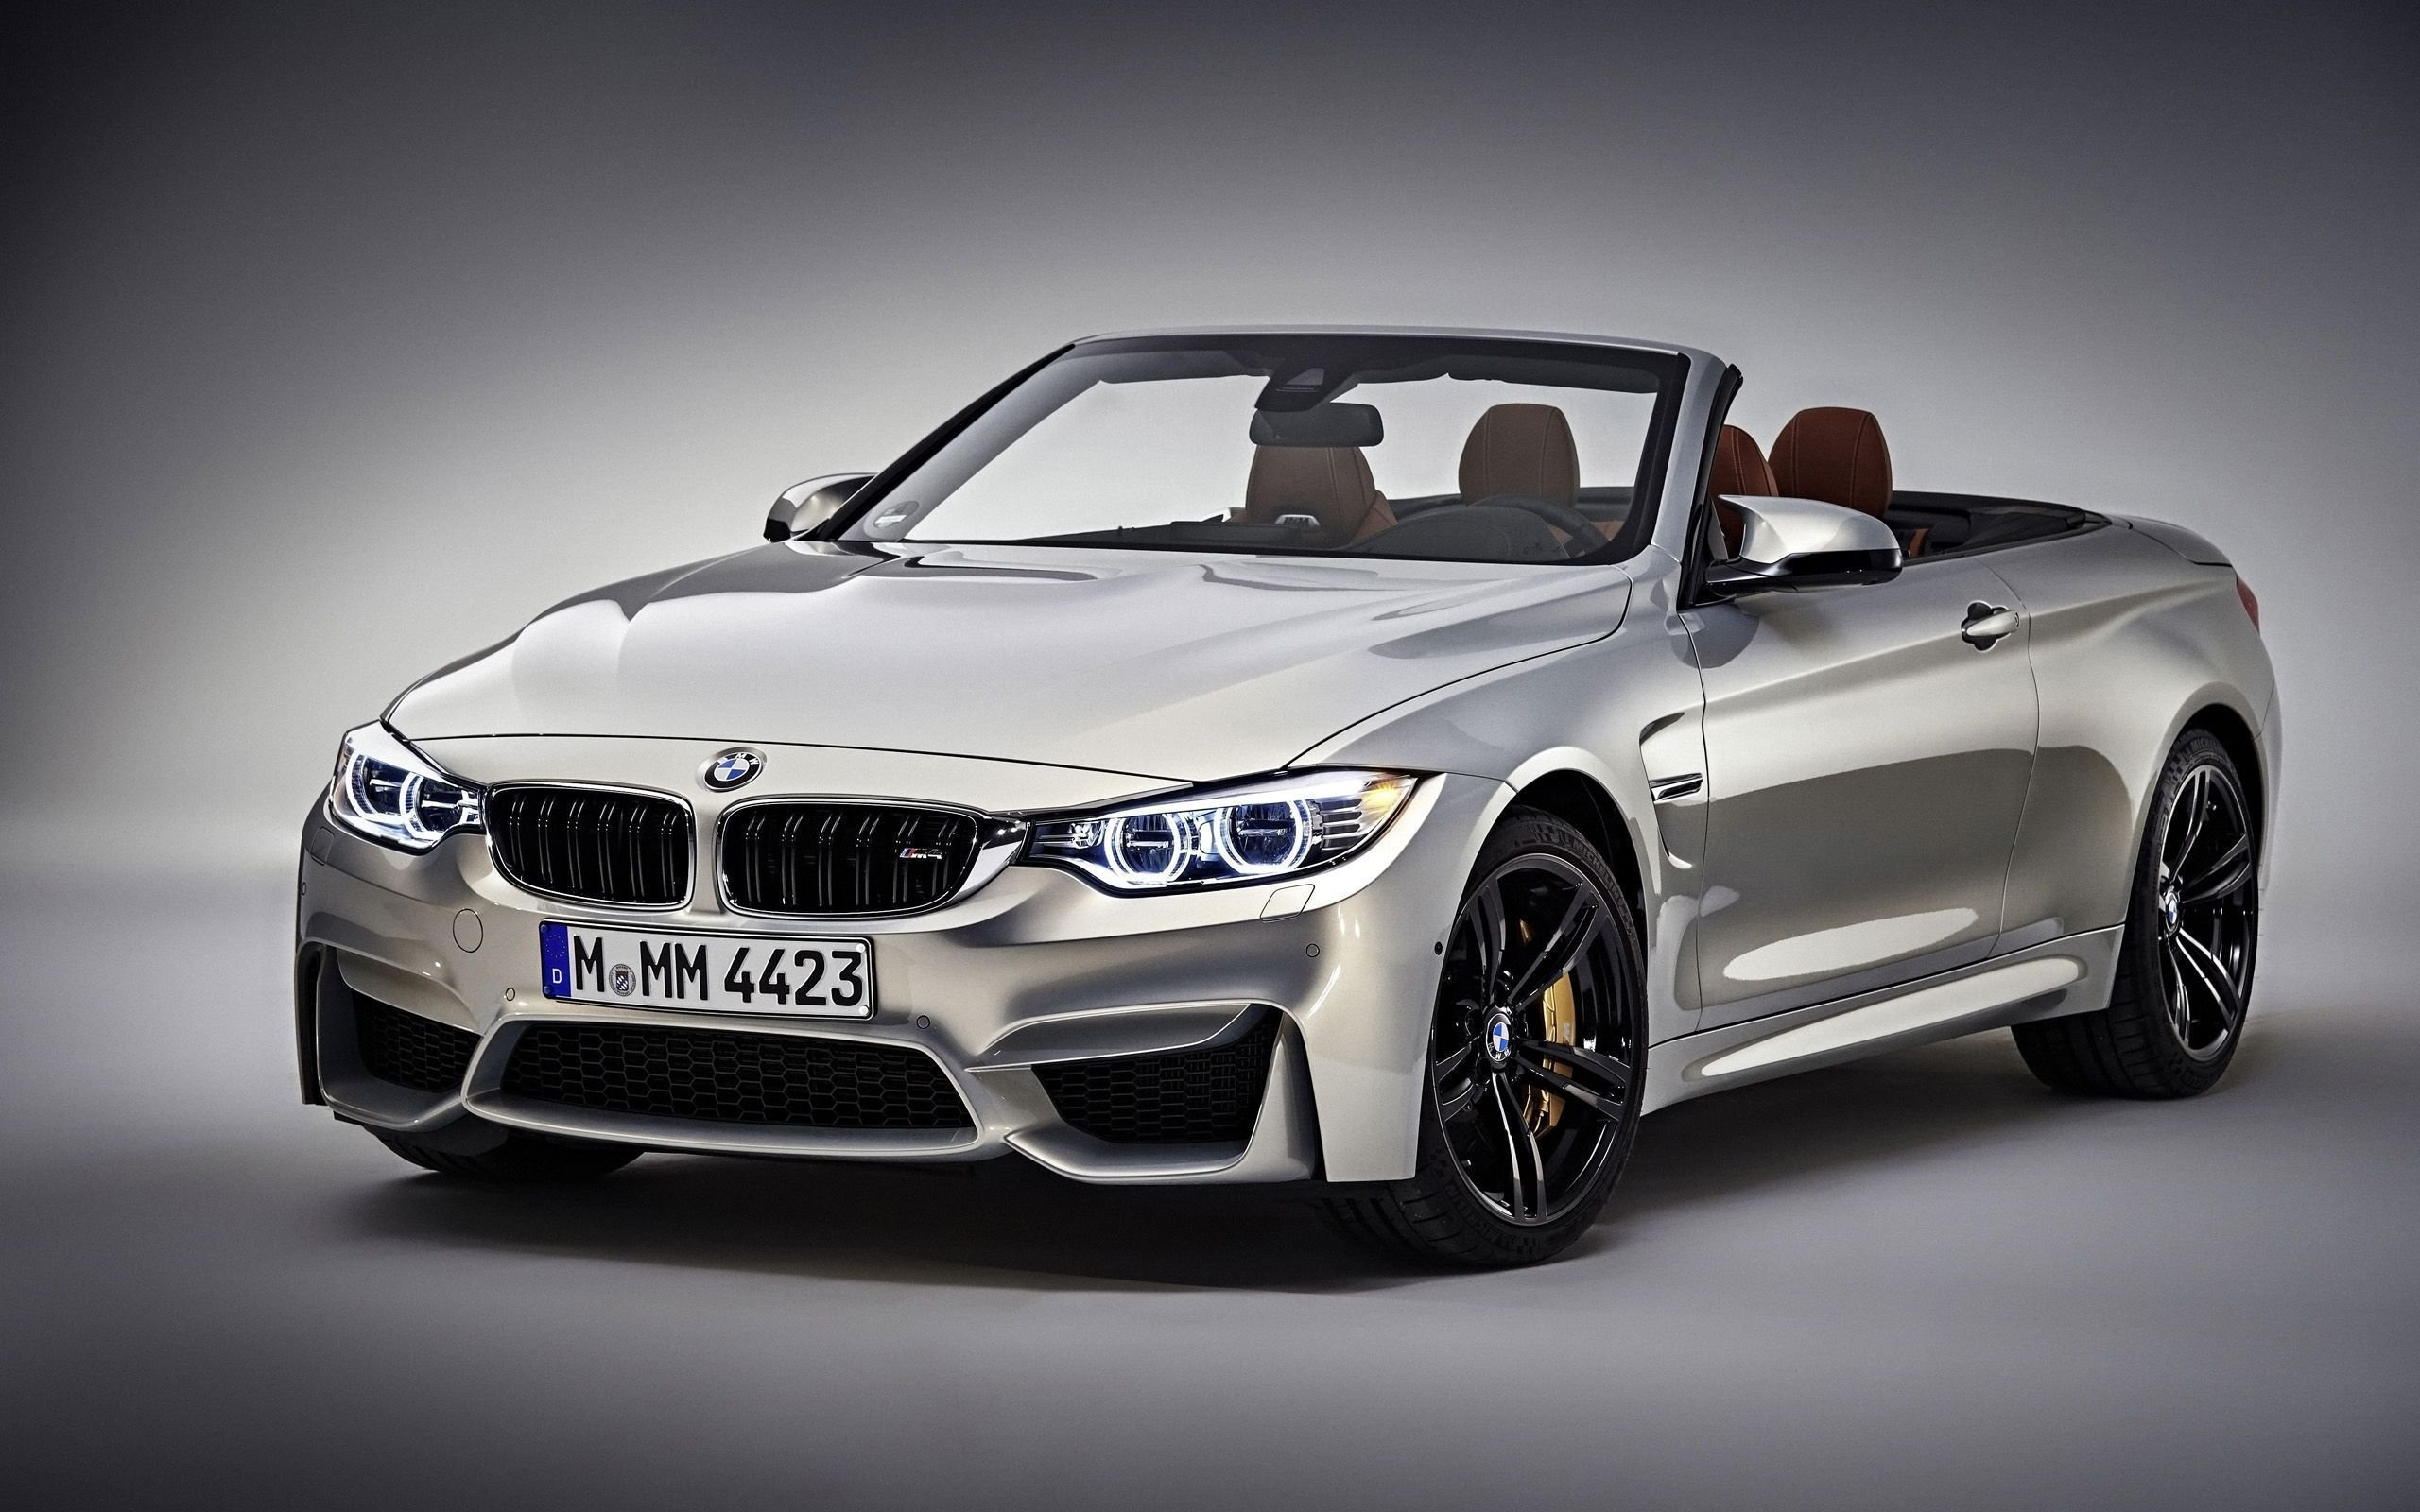 Latest Bmw 2015 Cars 23 Free Hd Car Wallpaper Wallpapers Download Free Download